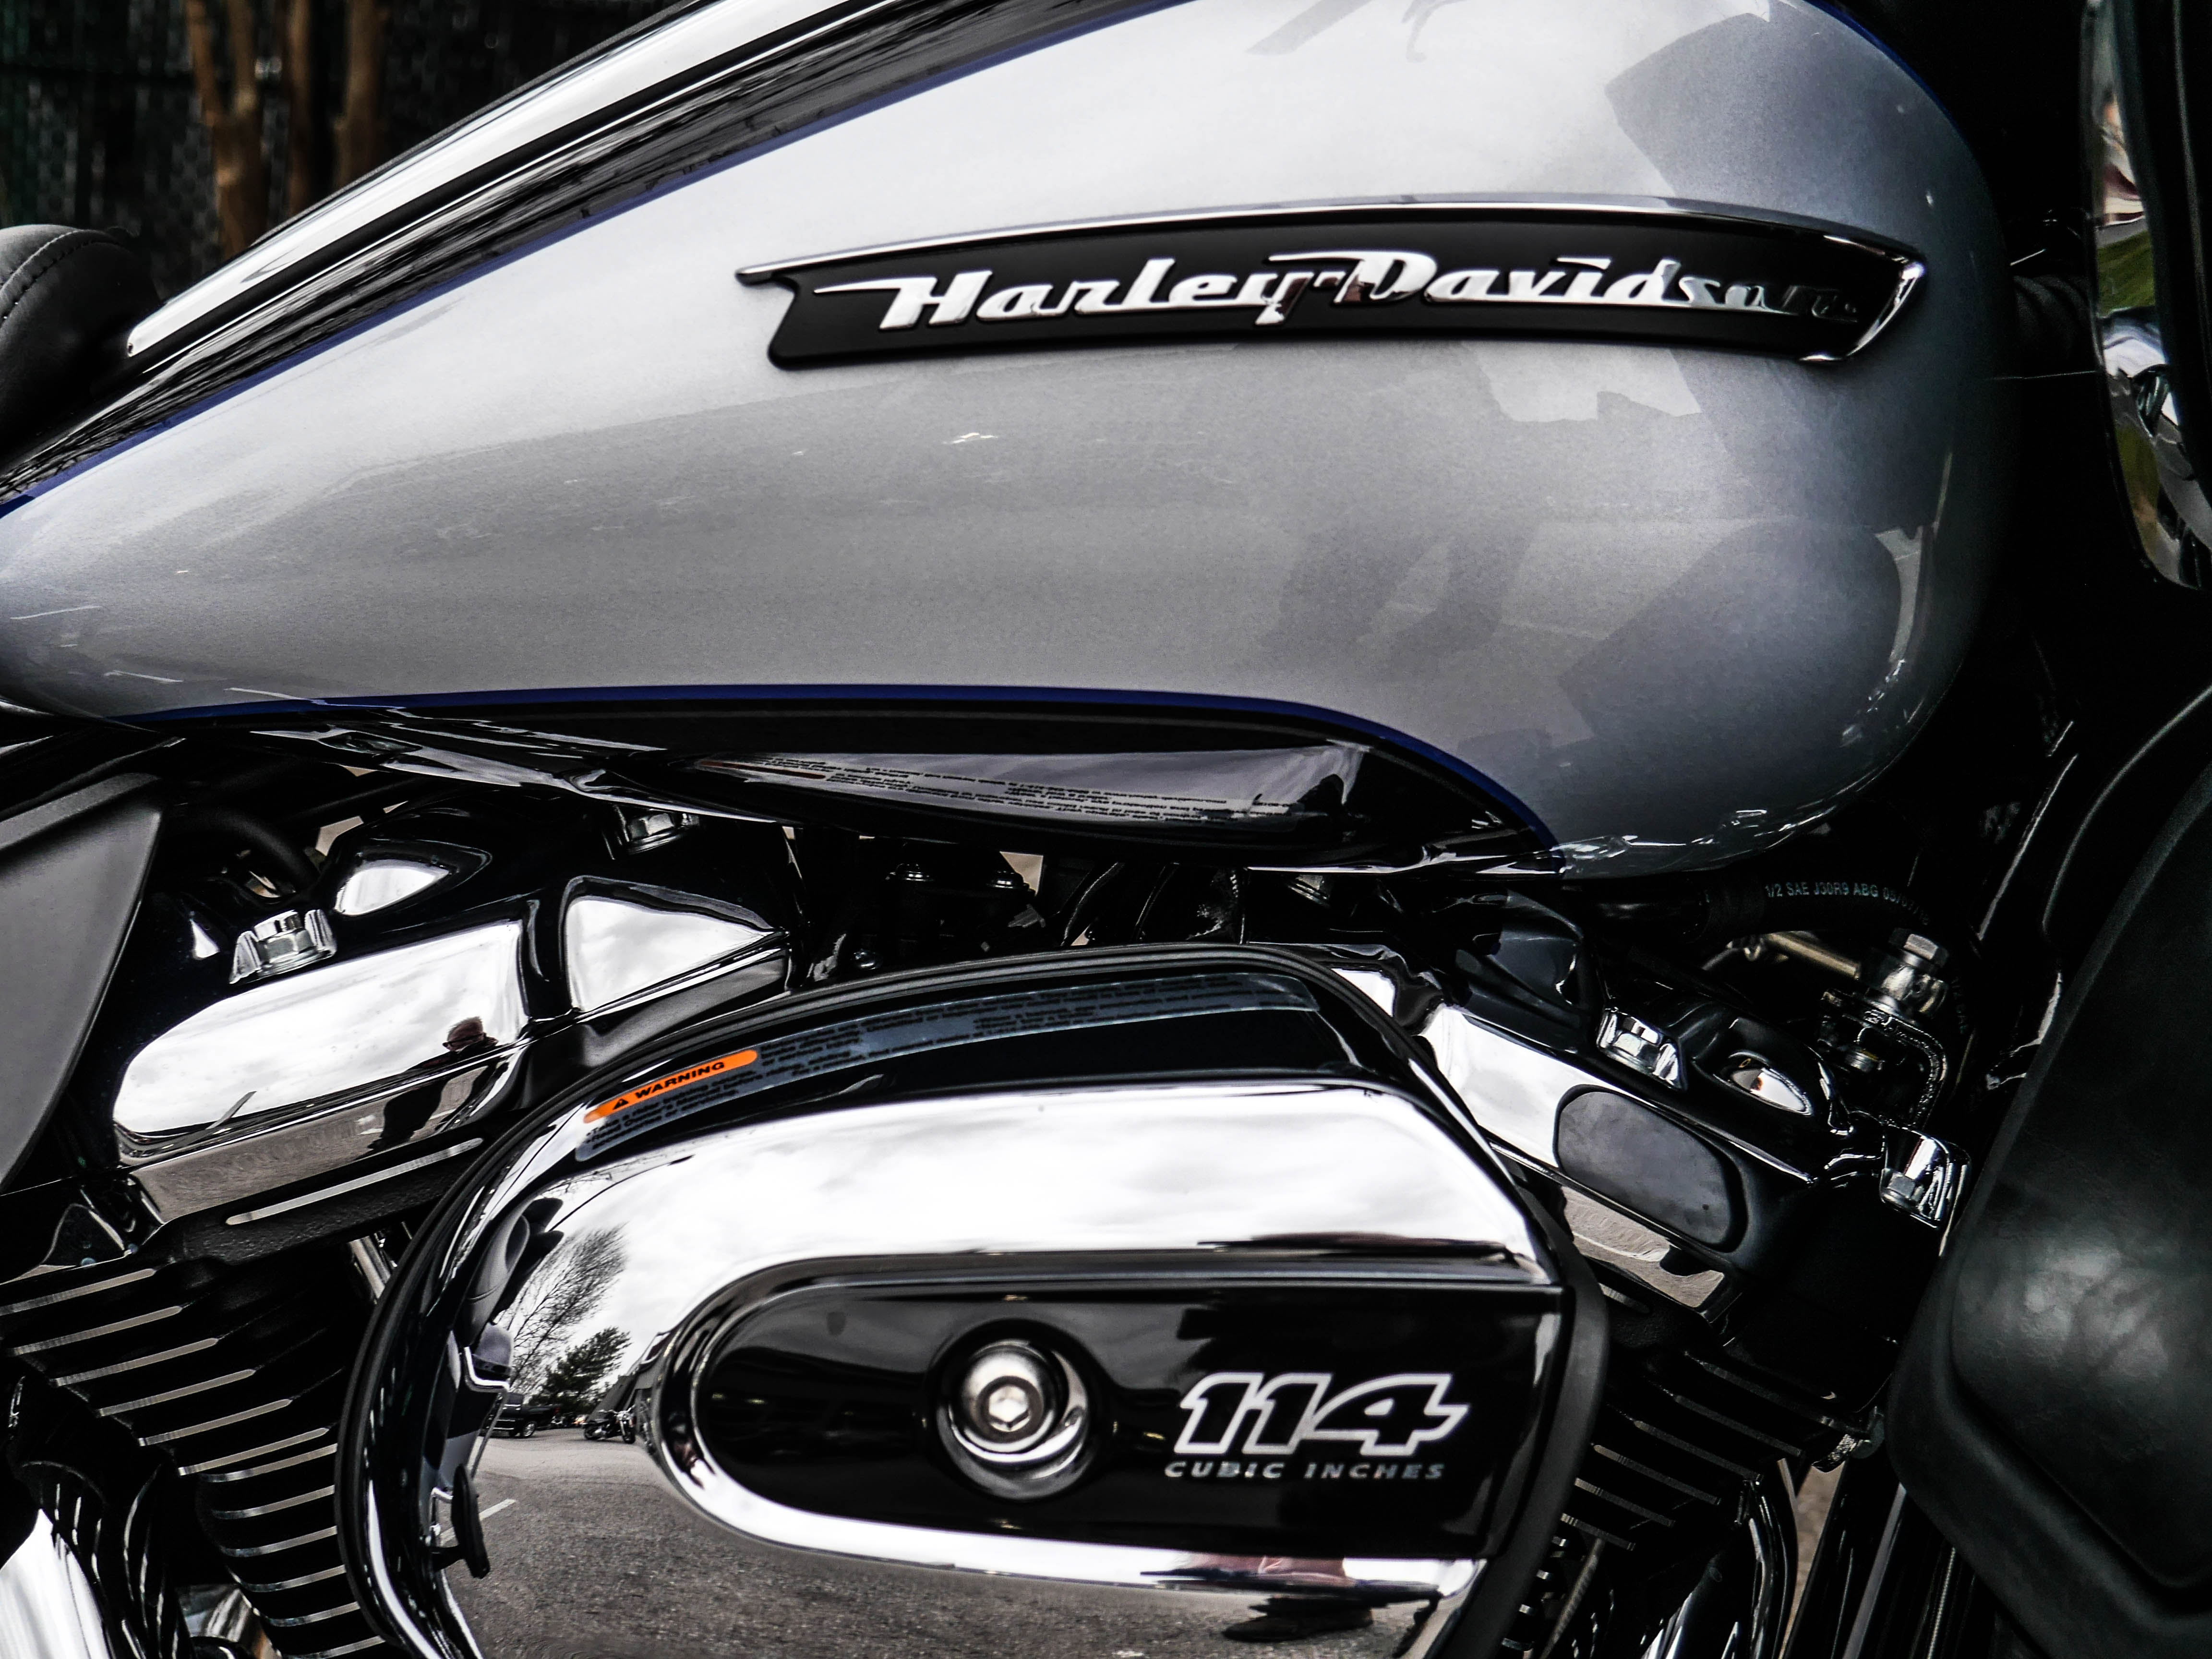 New 2019 Harley-Davidson Touring Road Glide Ultra